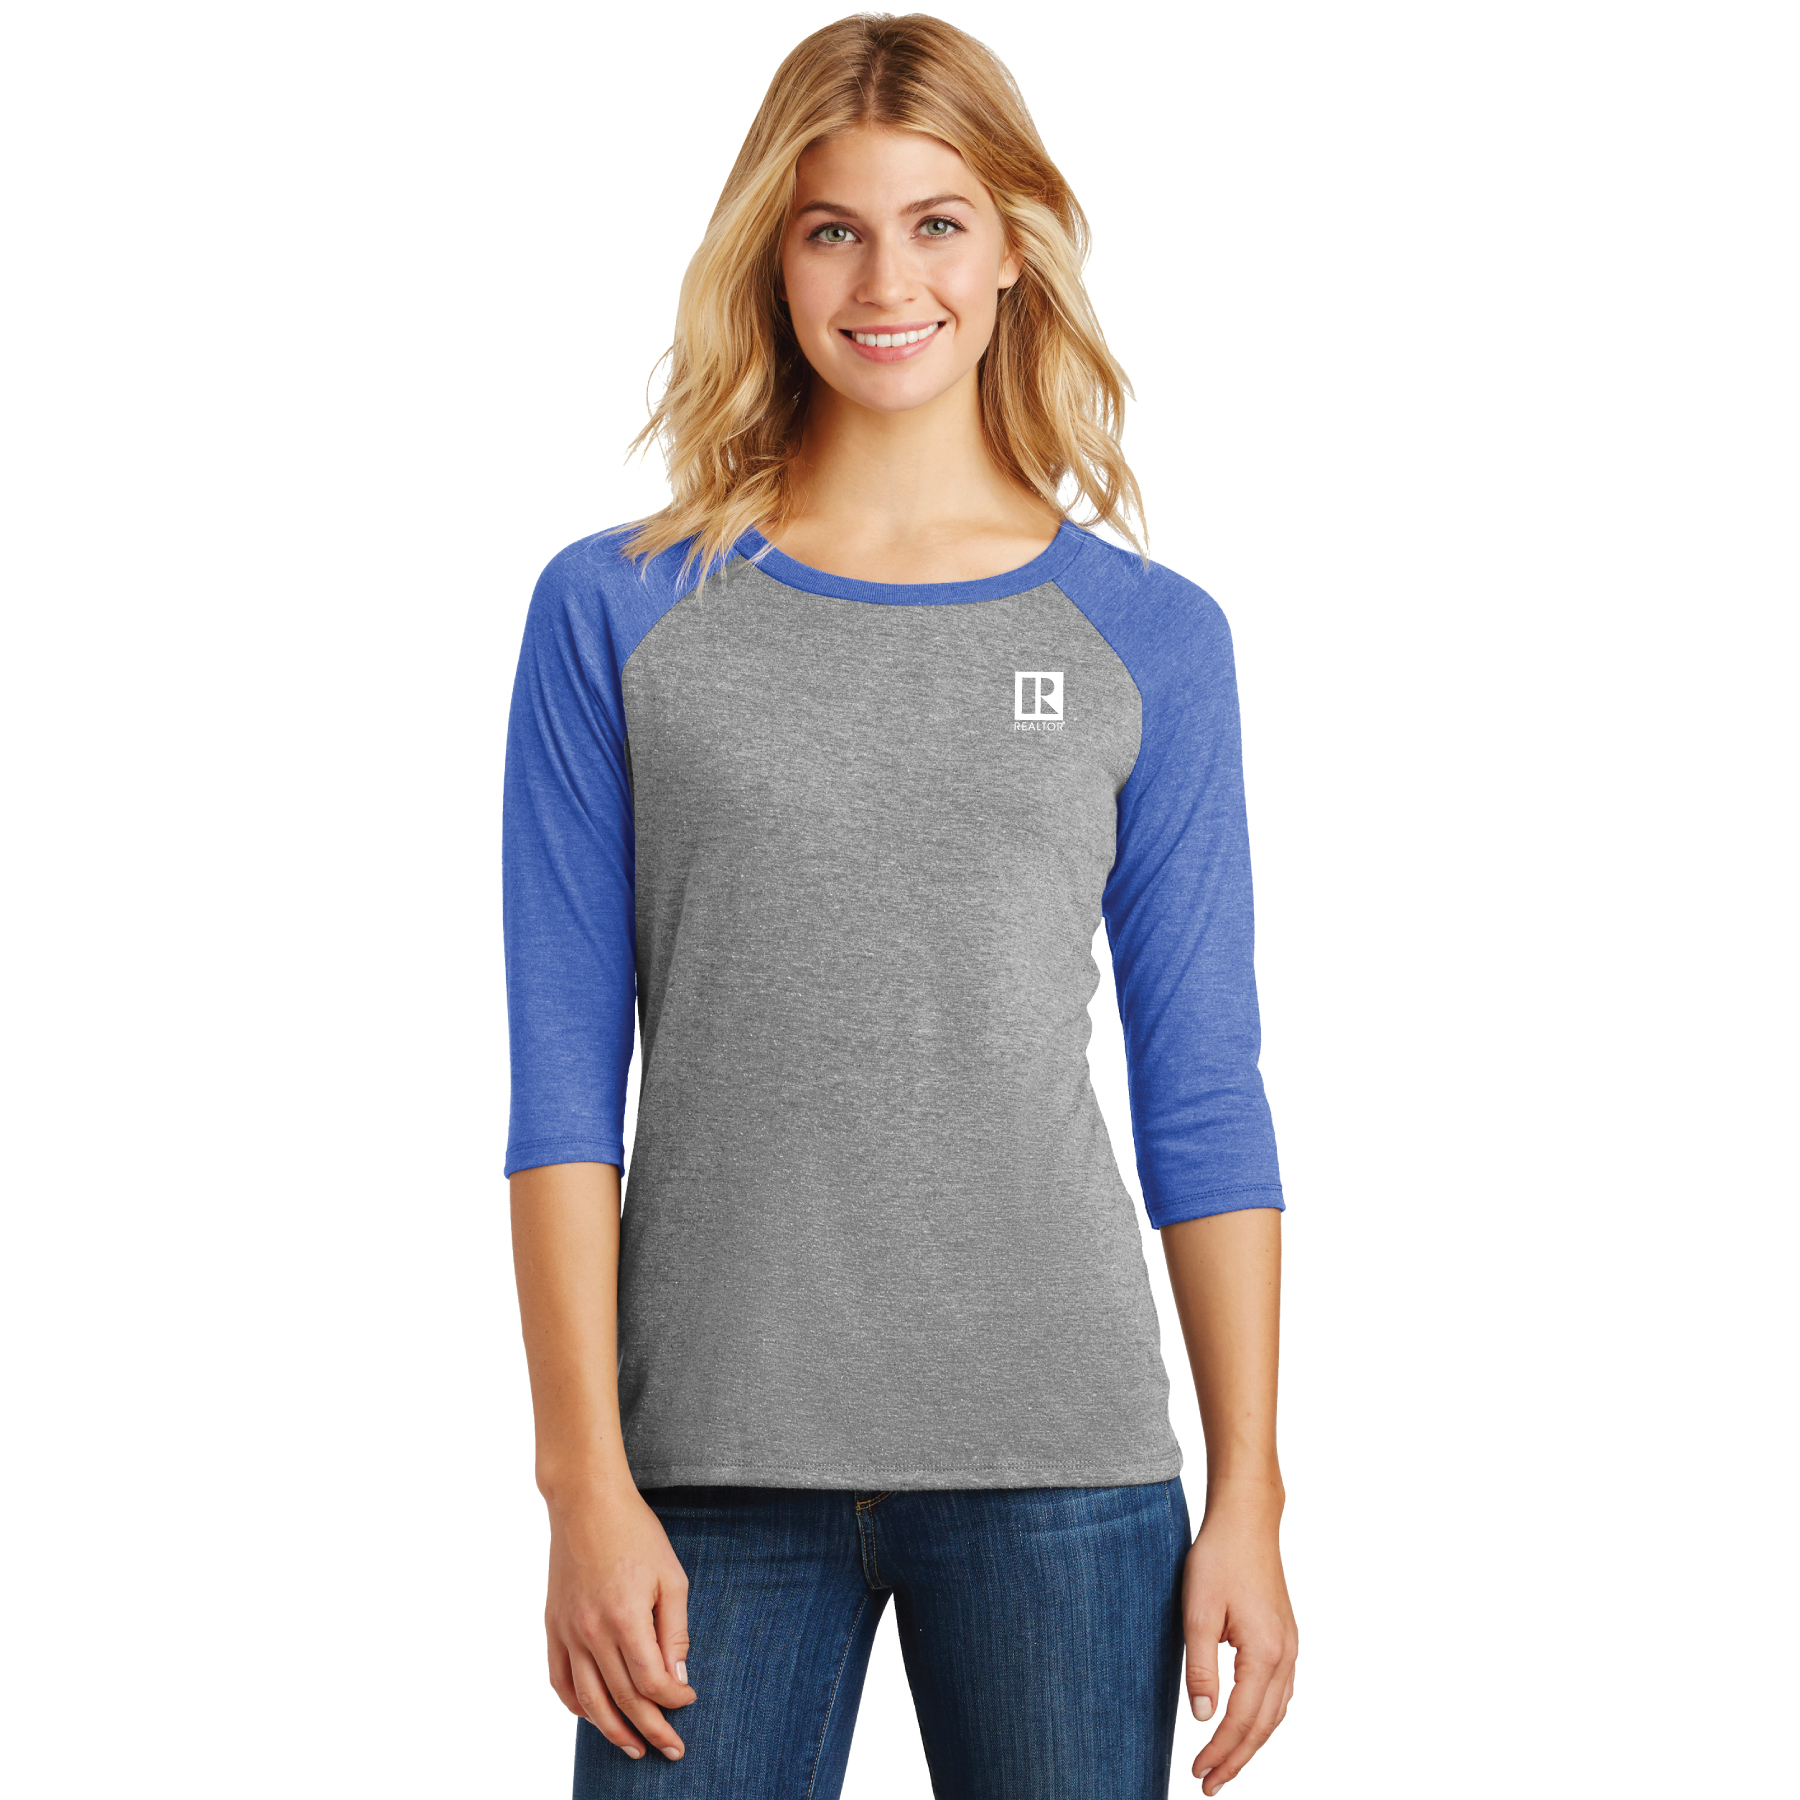 Ladies Perfect Tri® 3/4-Sleeve Raglan ladies, 3/4 sleeves, raglans, baseballs